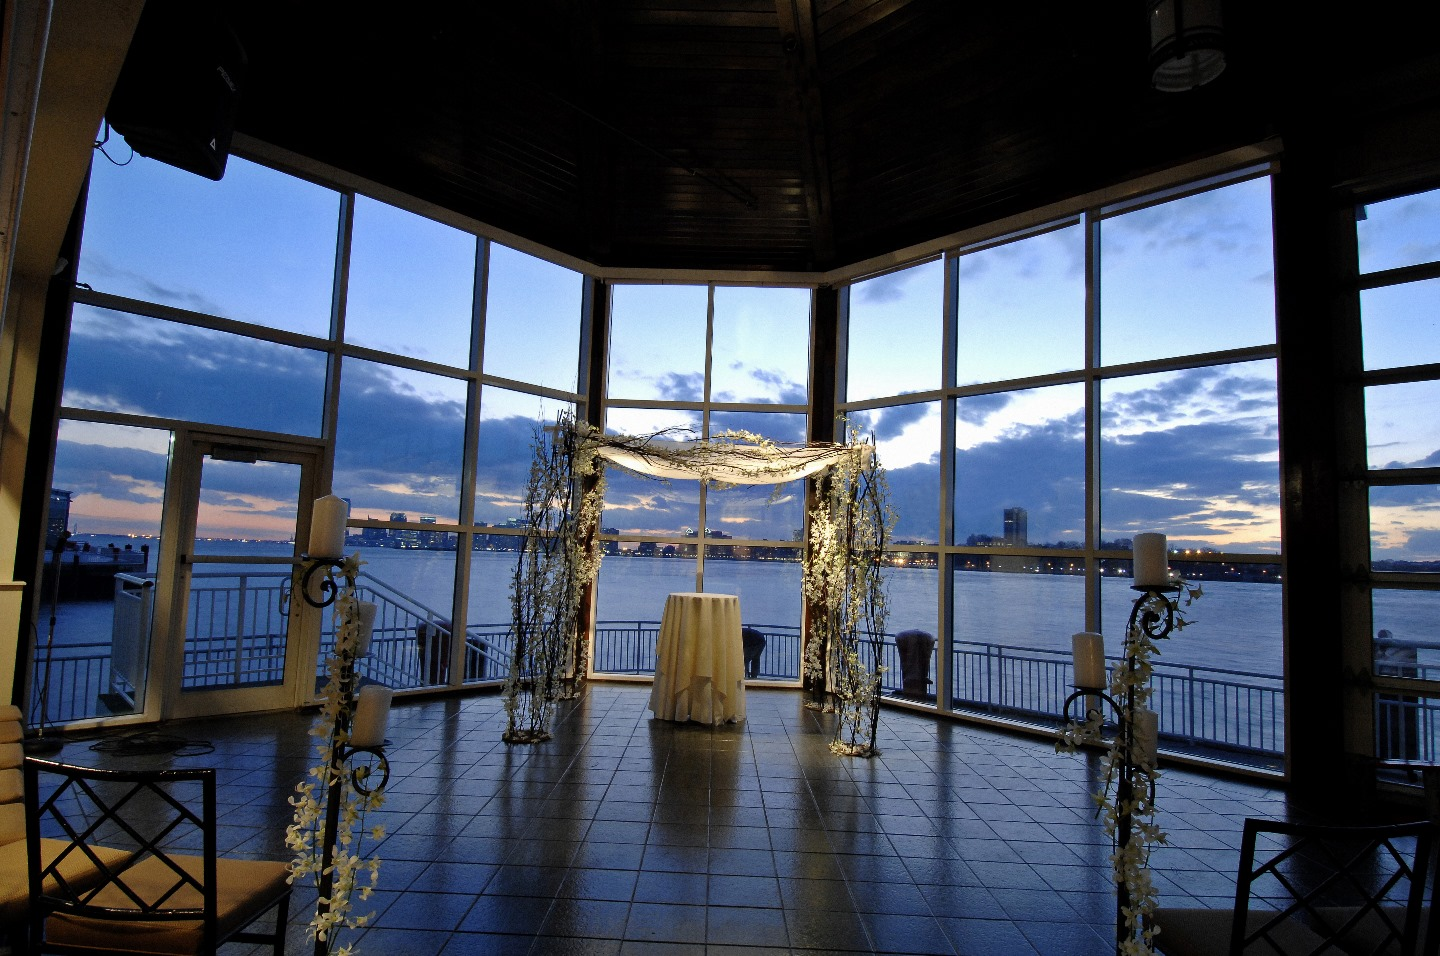 Thirteen Of The Most Visually Stunning Wedding Venues In